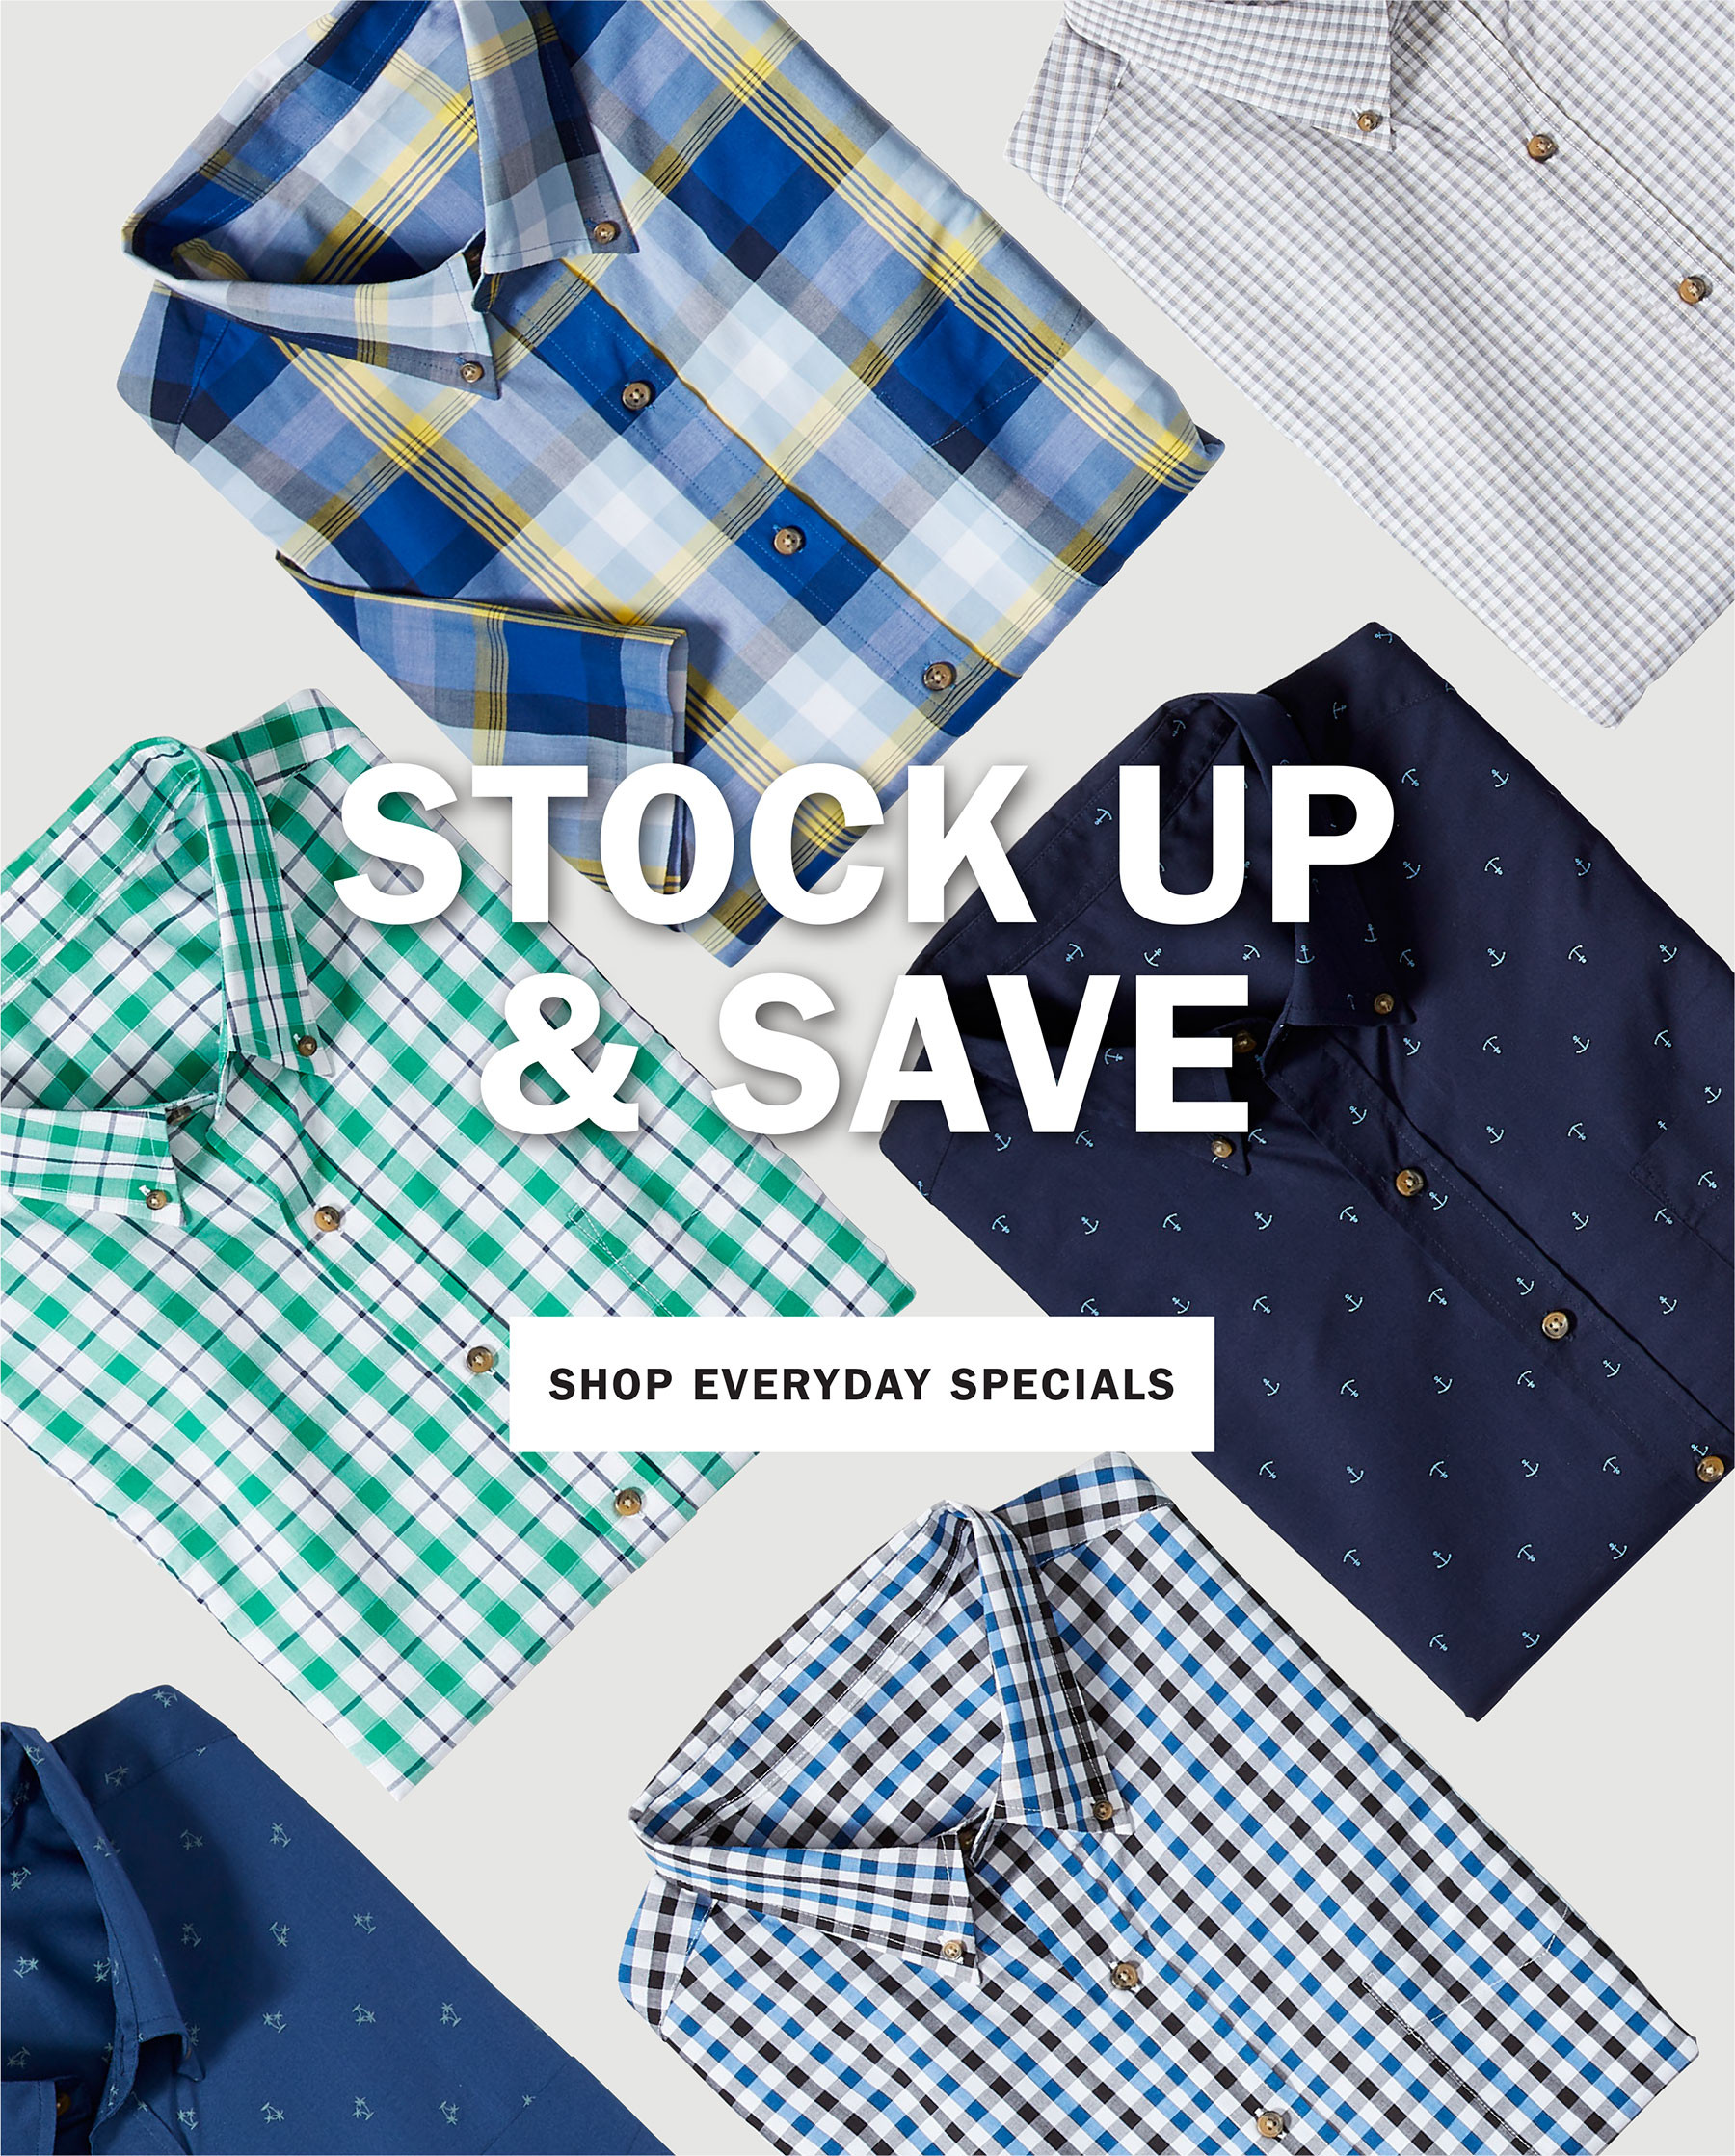 STOCK UP AND SAVE | SHOP EVERYDAY SPECIALS